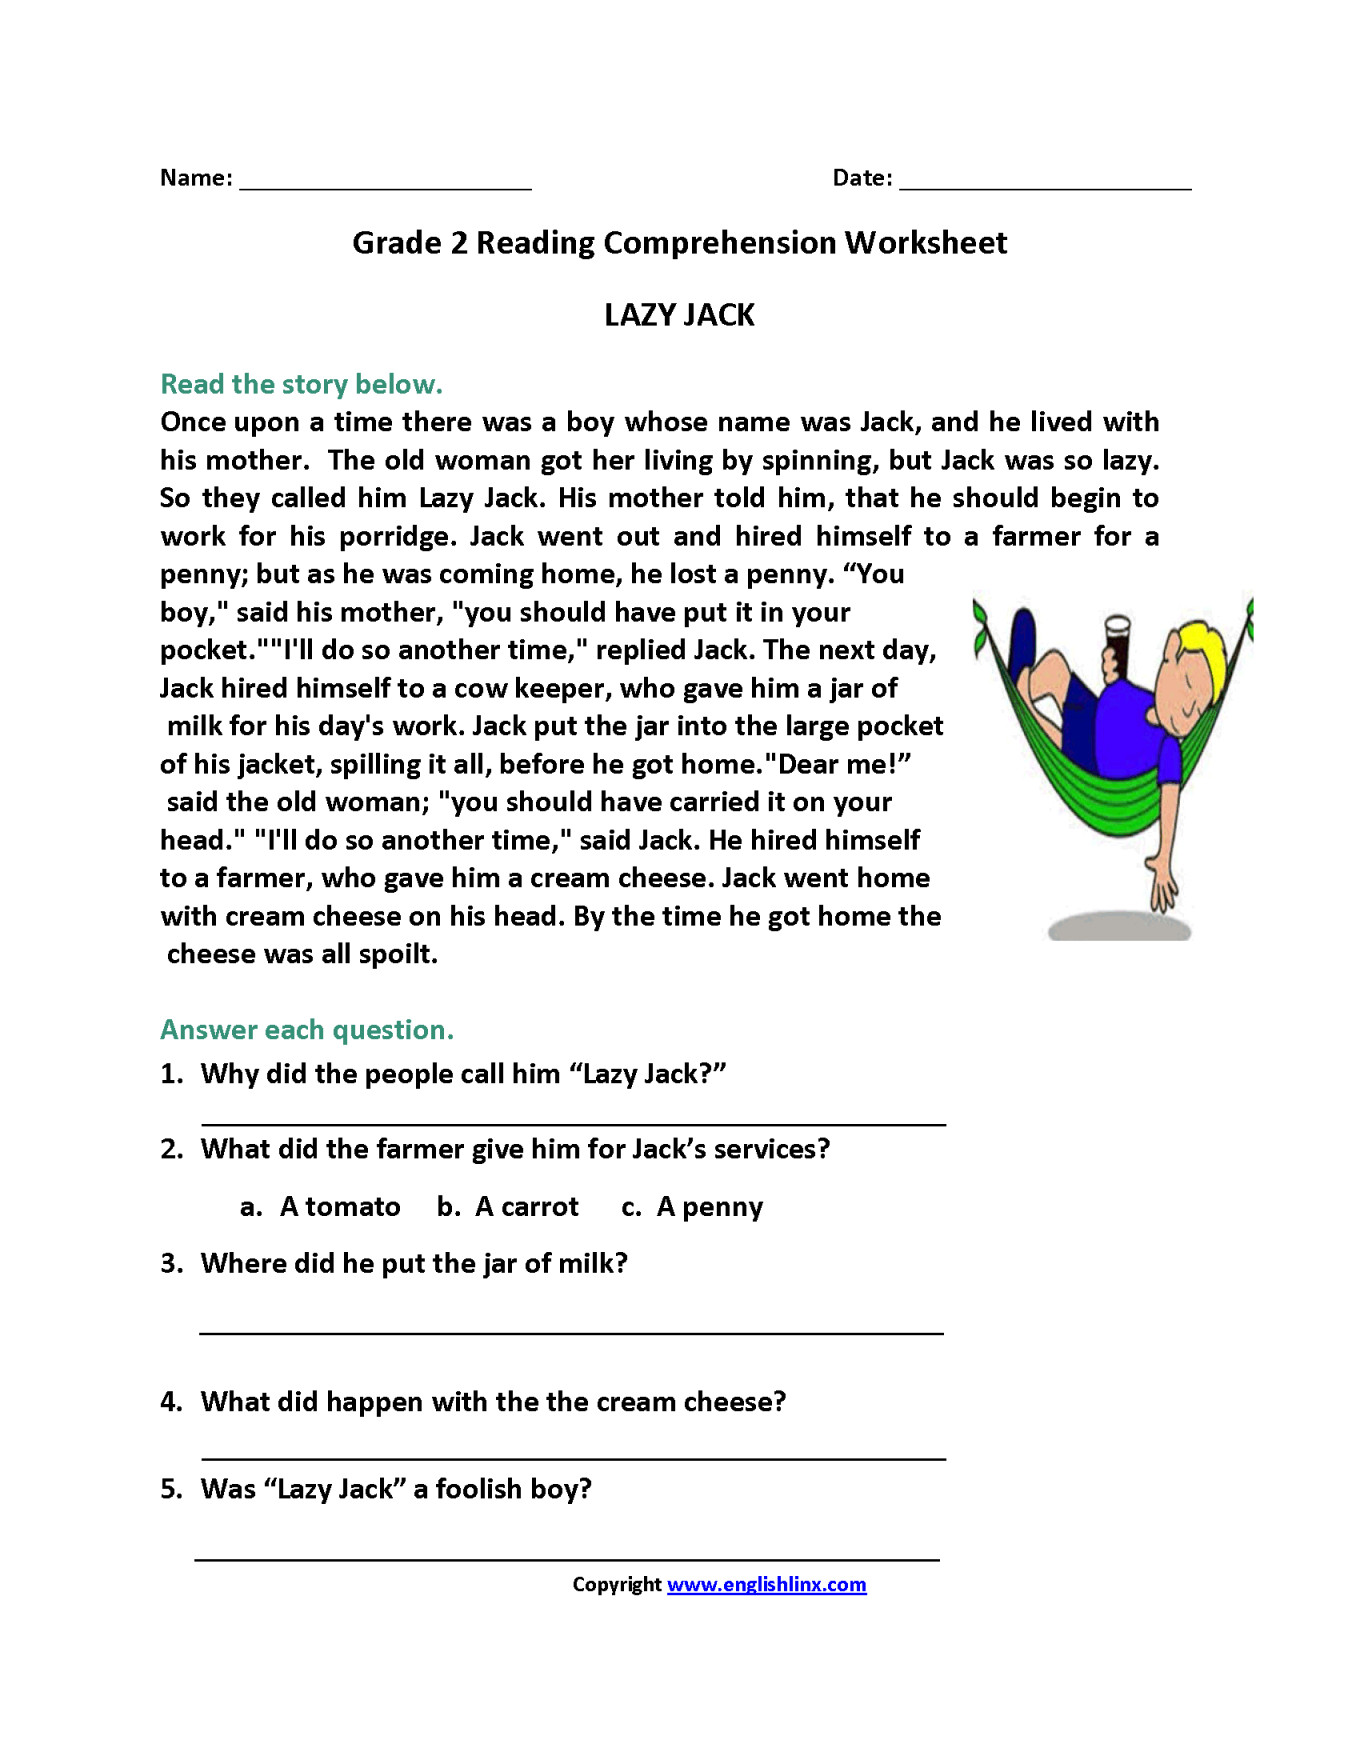 hight resolution of 4 Free Math Worksheets Second Grade 2 Multiplication Multiplication Table 2  3 - apocalomegaproductions.com